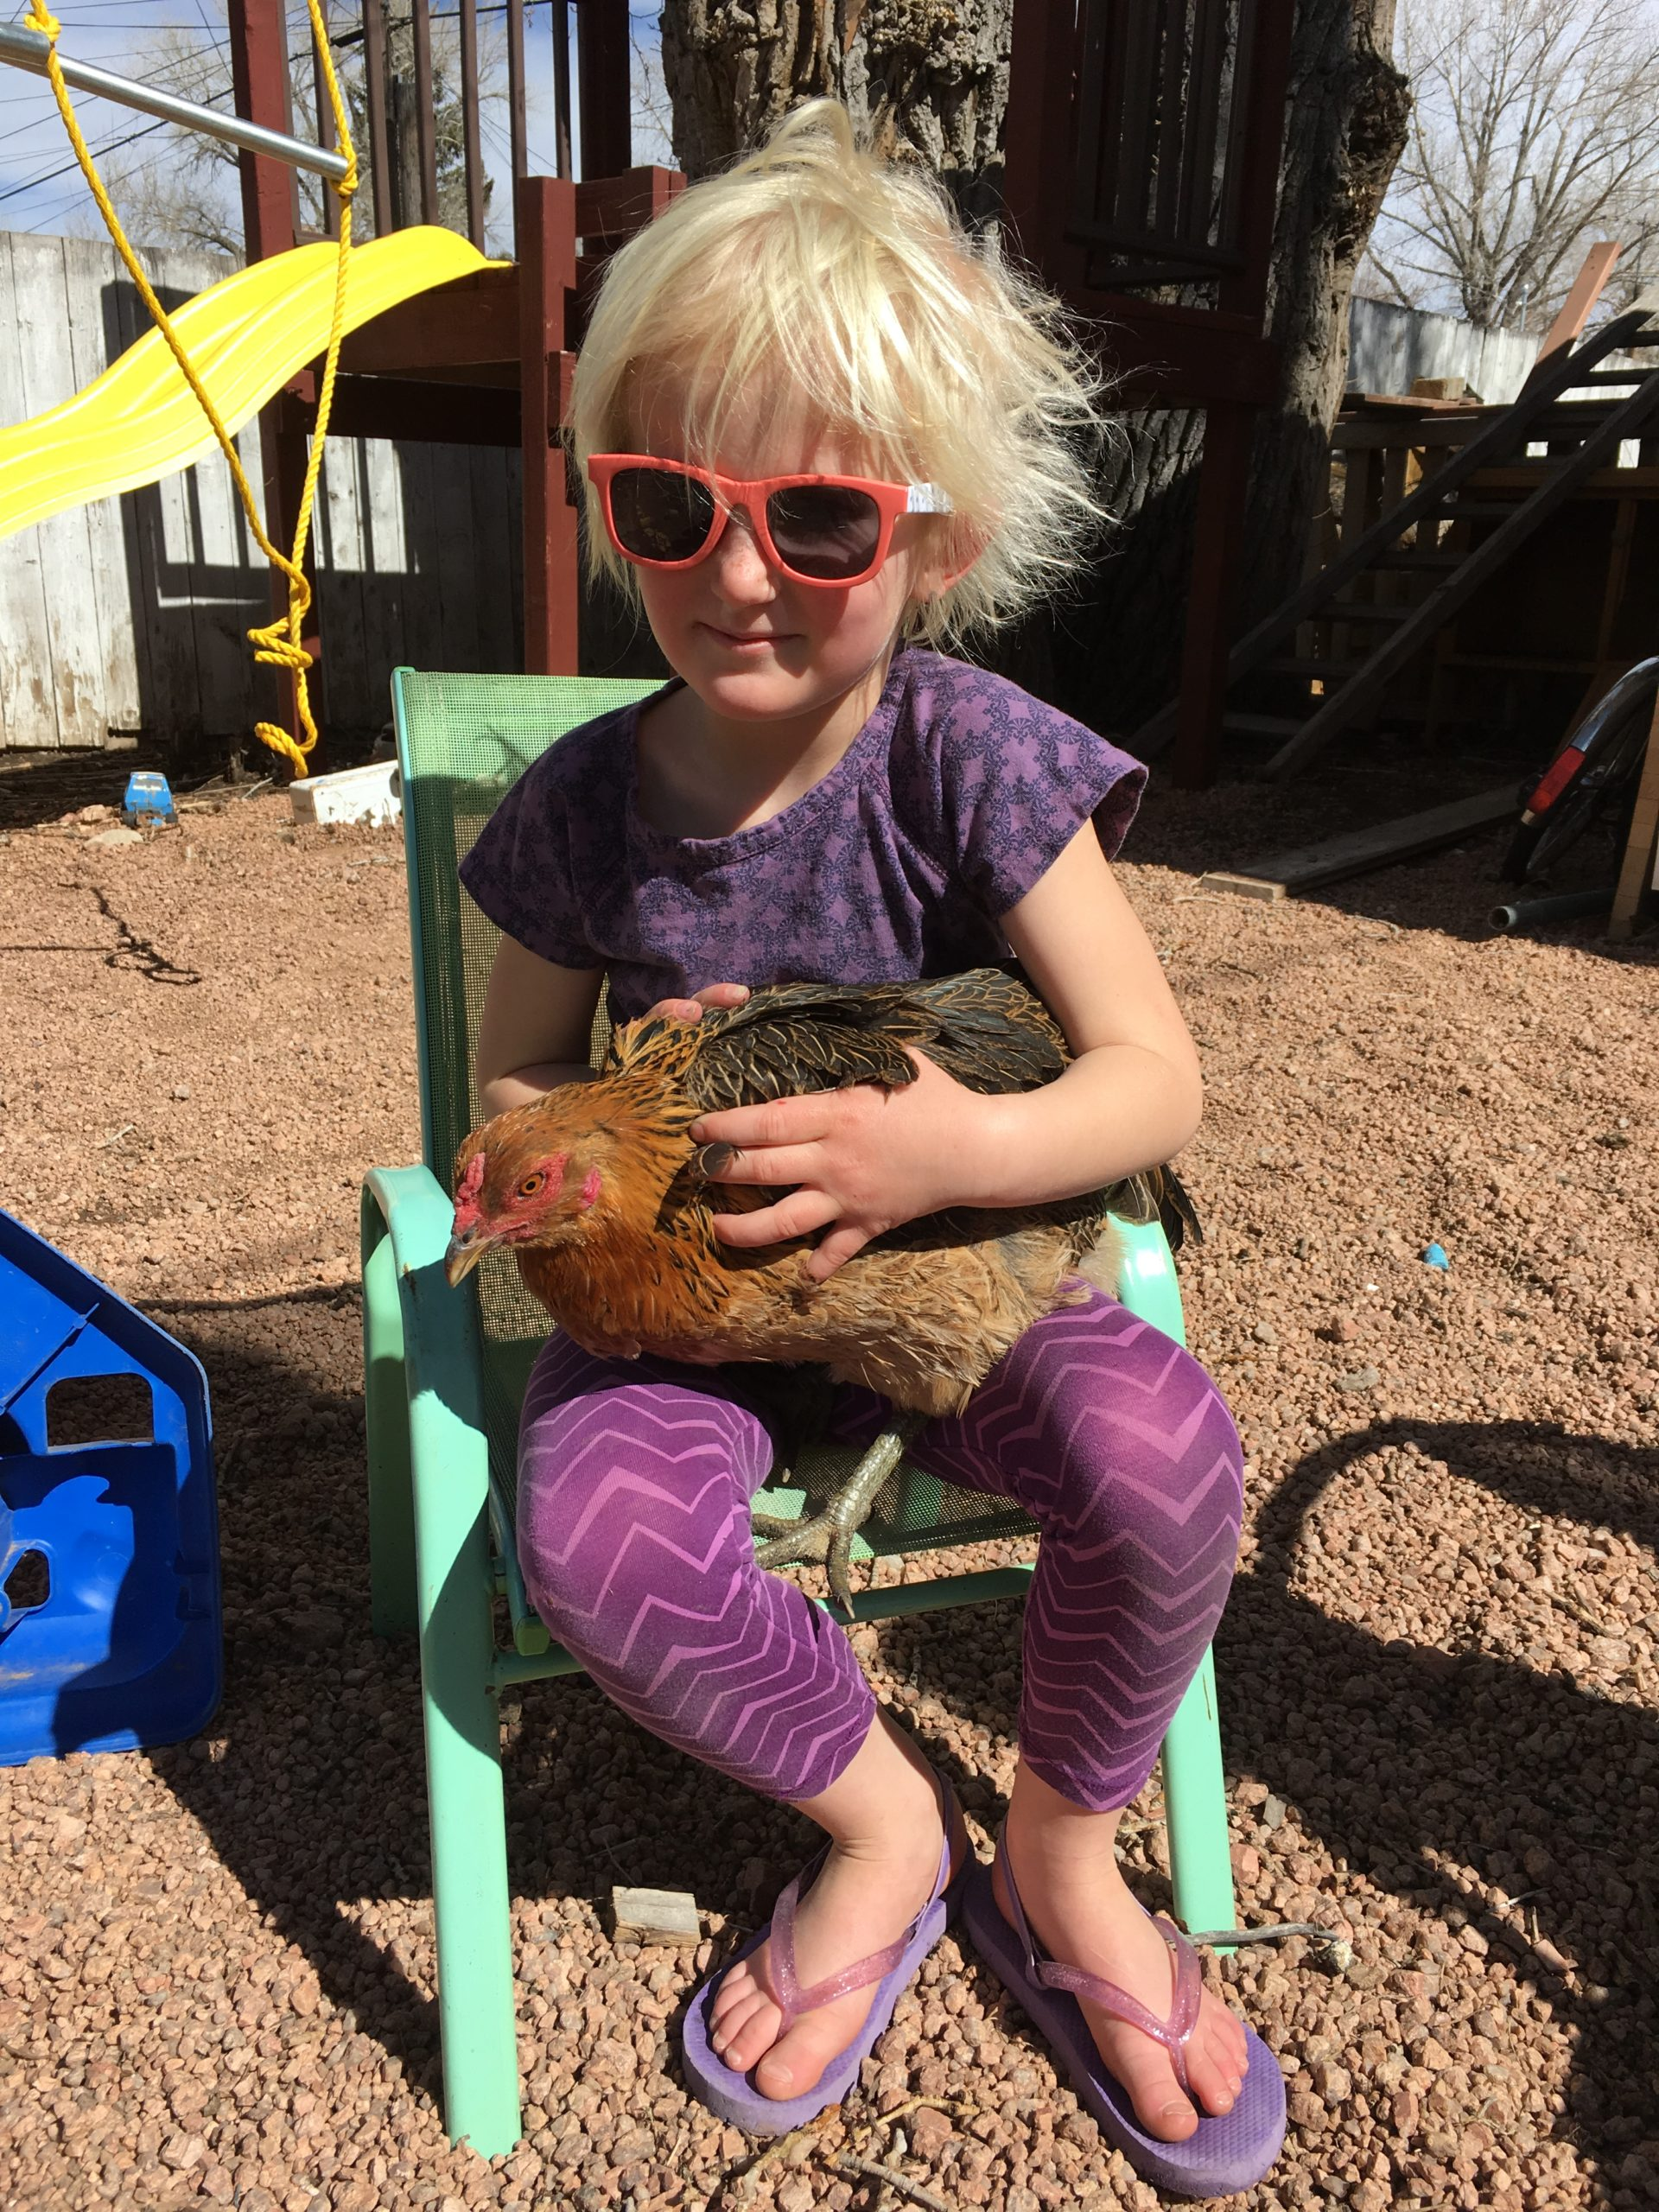 little girl with sunglasses holding a chicken